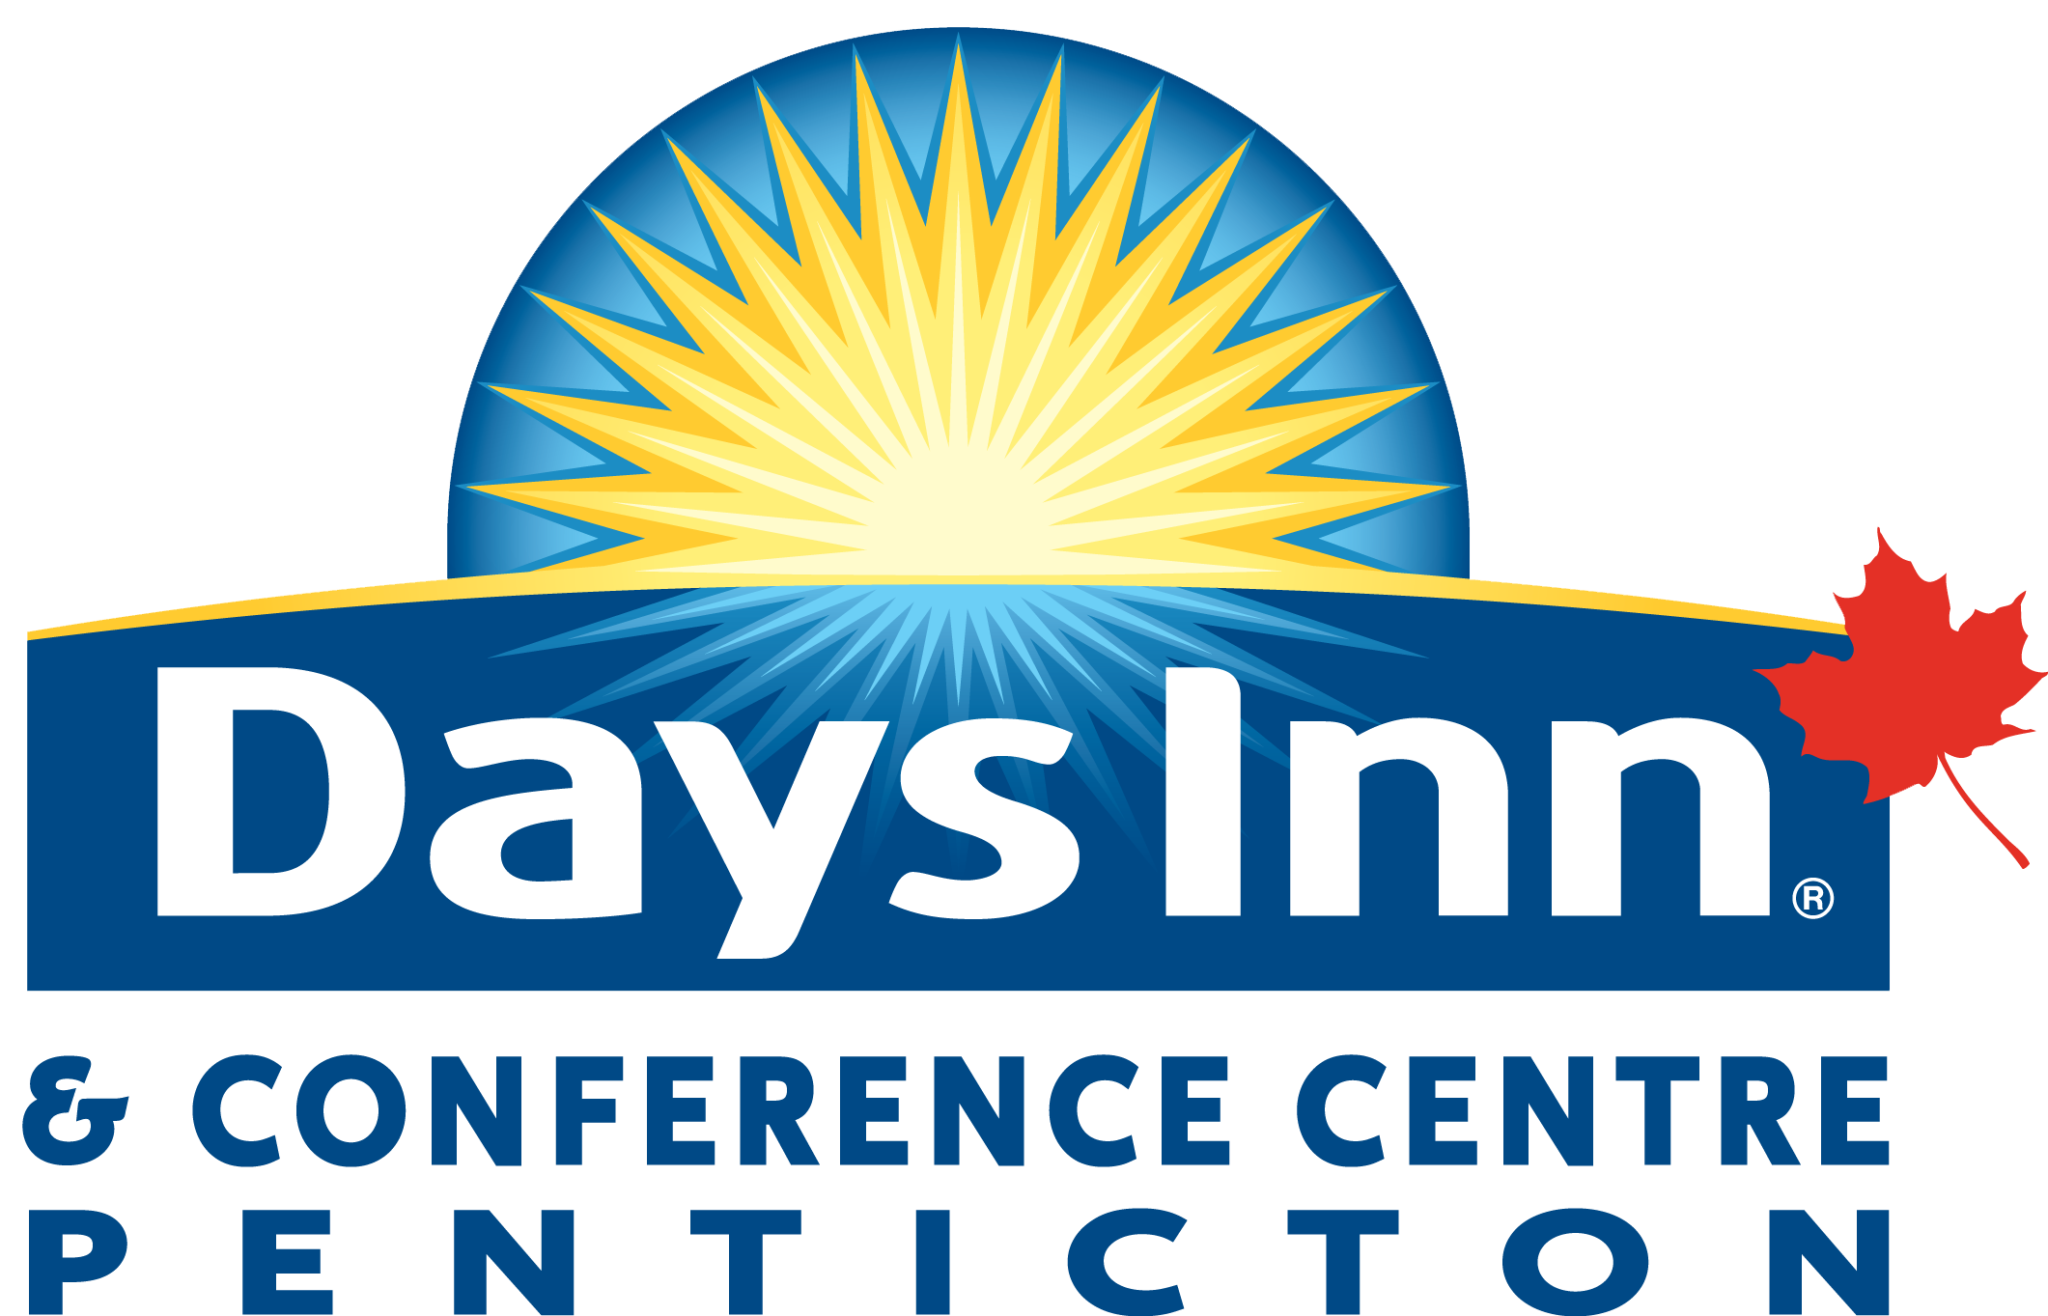 Days Inn Logo Pictures to Pin on Pinterest - PinsDaddy